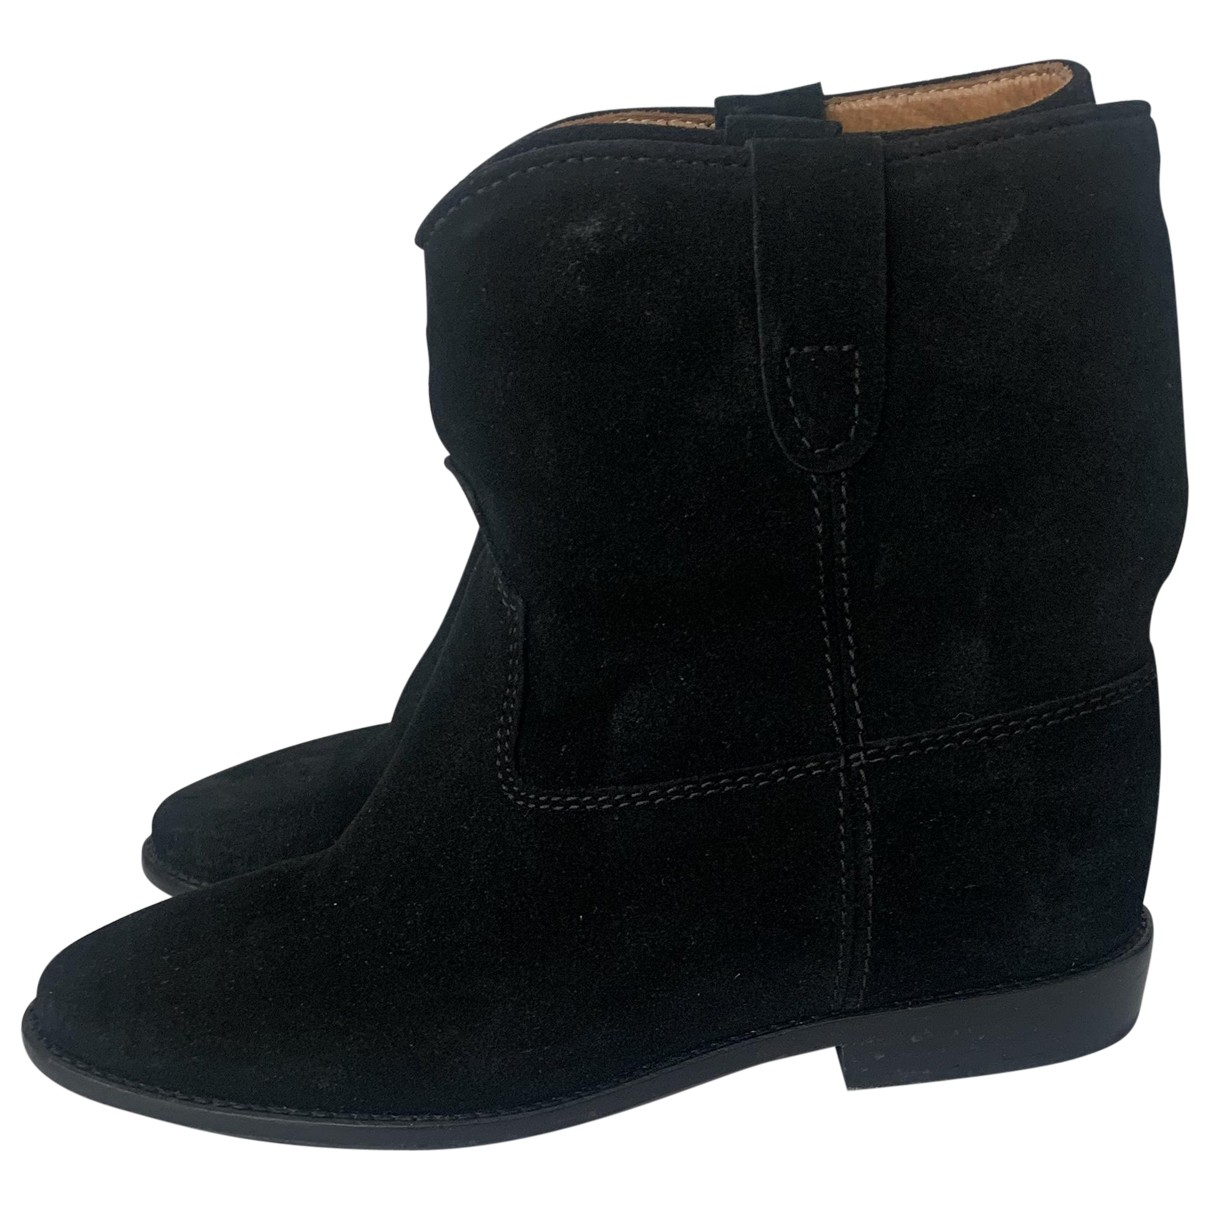 Isabel Marant Crisi  Black Suede Ankle boots for Women 37 EU